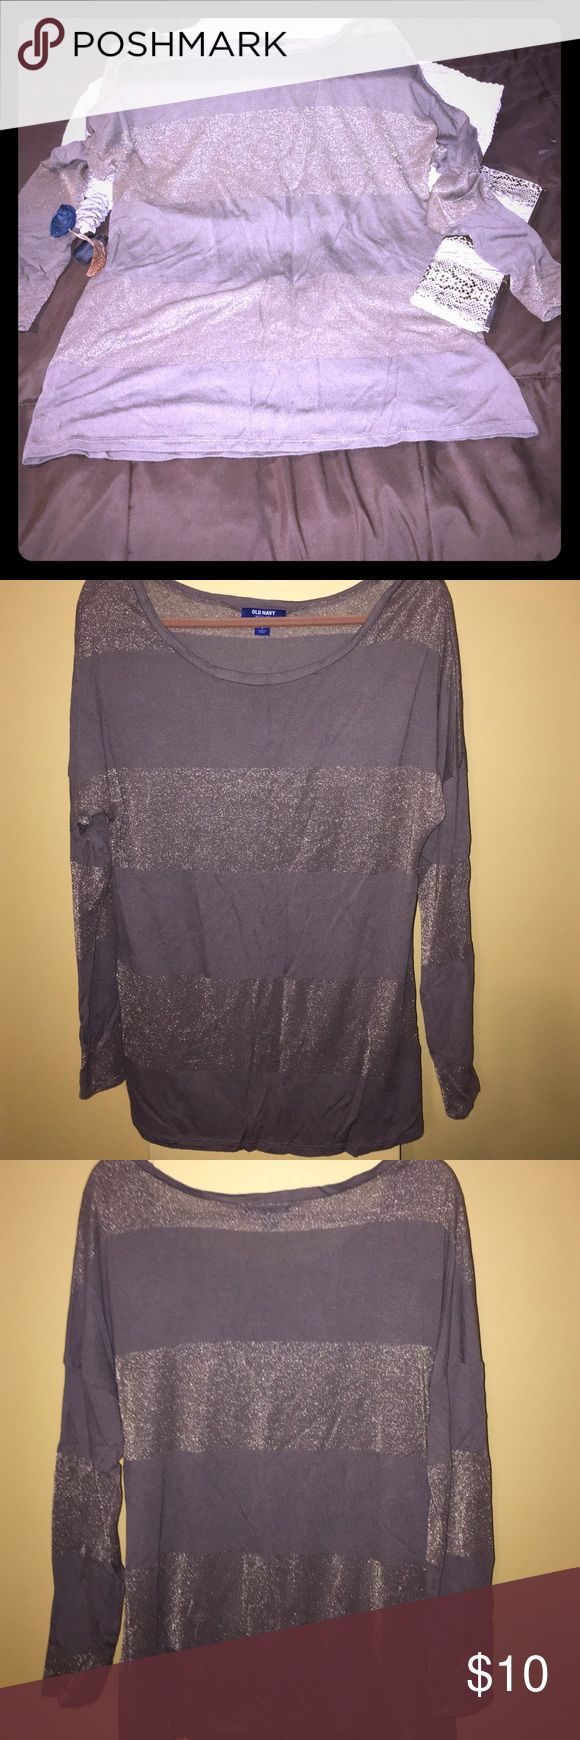 Old navy brown bronze shimmer top Cute Old navy brown bronze shimmer top.               Size (L). Nice trendy top. Worn a couple times but overall in great condition.🤗 Old Navy Tops Blouses